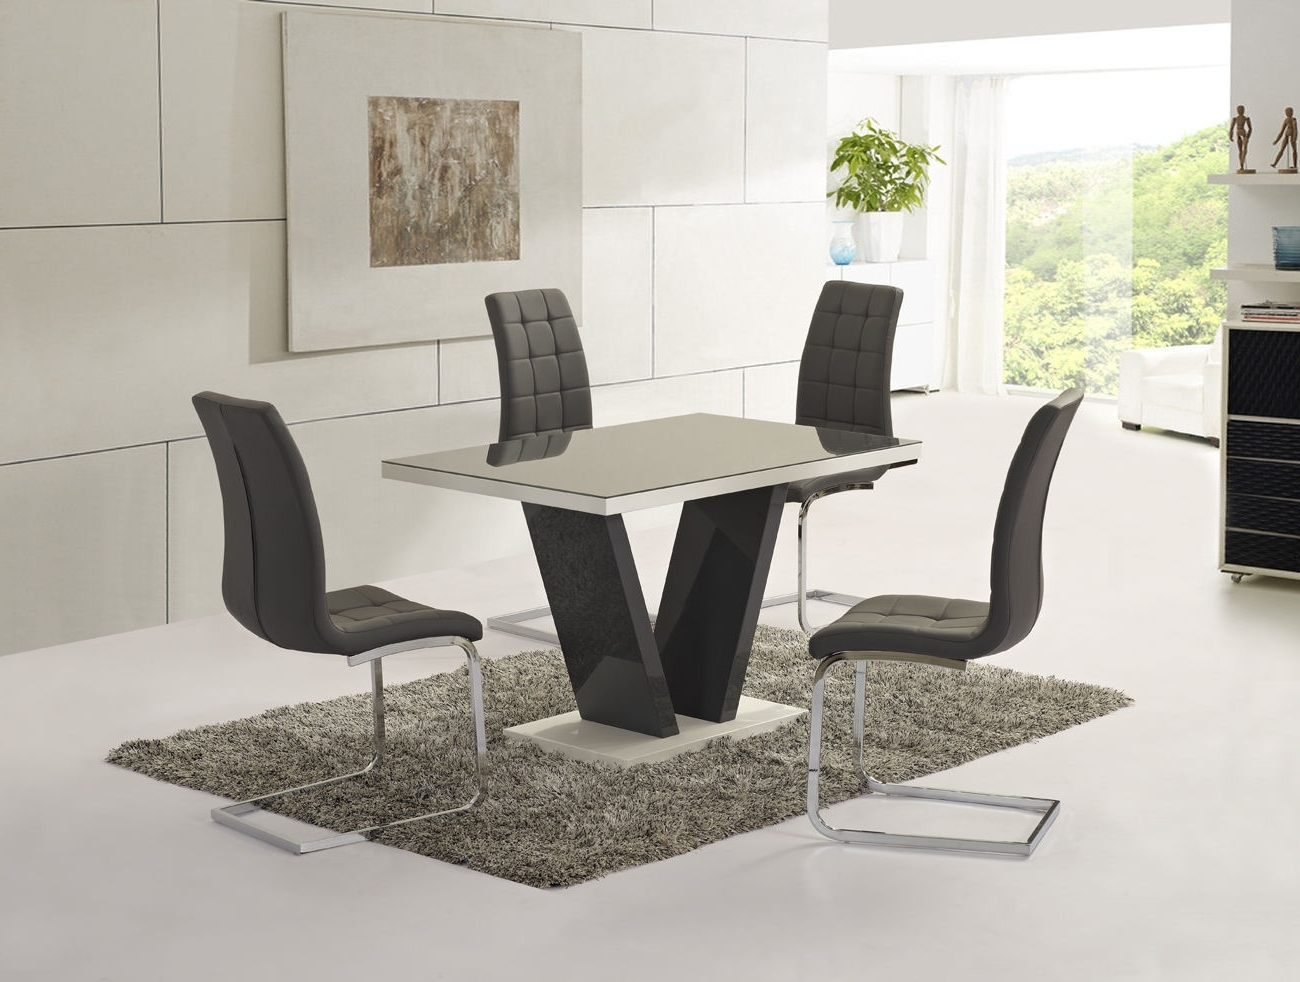 Preferred Gloss Dining Tables Sets With Regard To Ga Vico Gloss Grey Glass Top Designer 160Cm Dining Set – 4 6 Grey (Gallery 3 of 25)